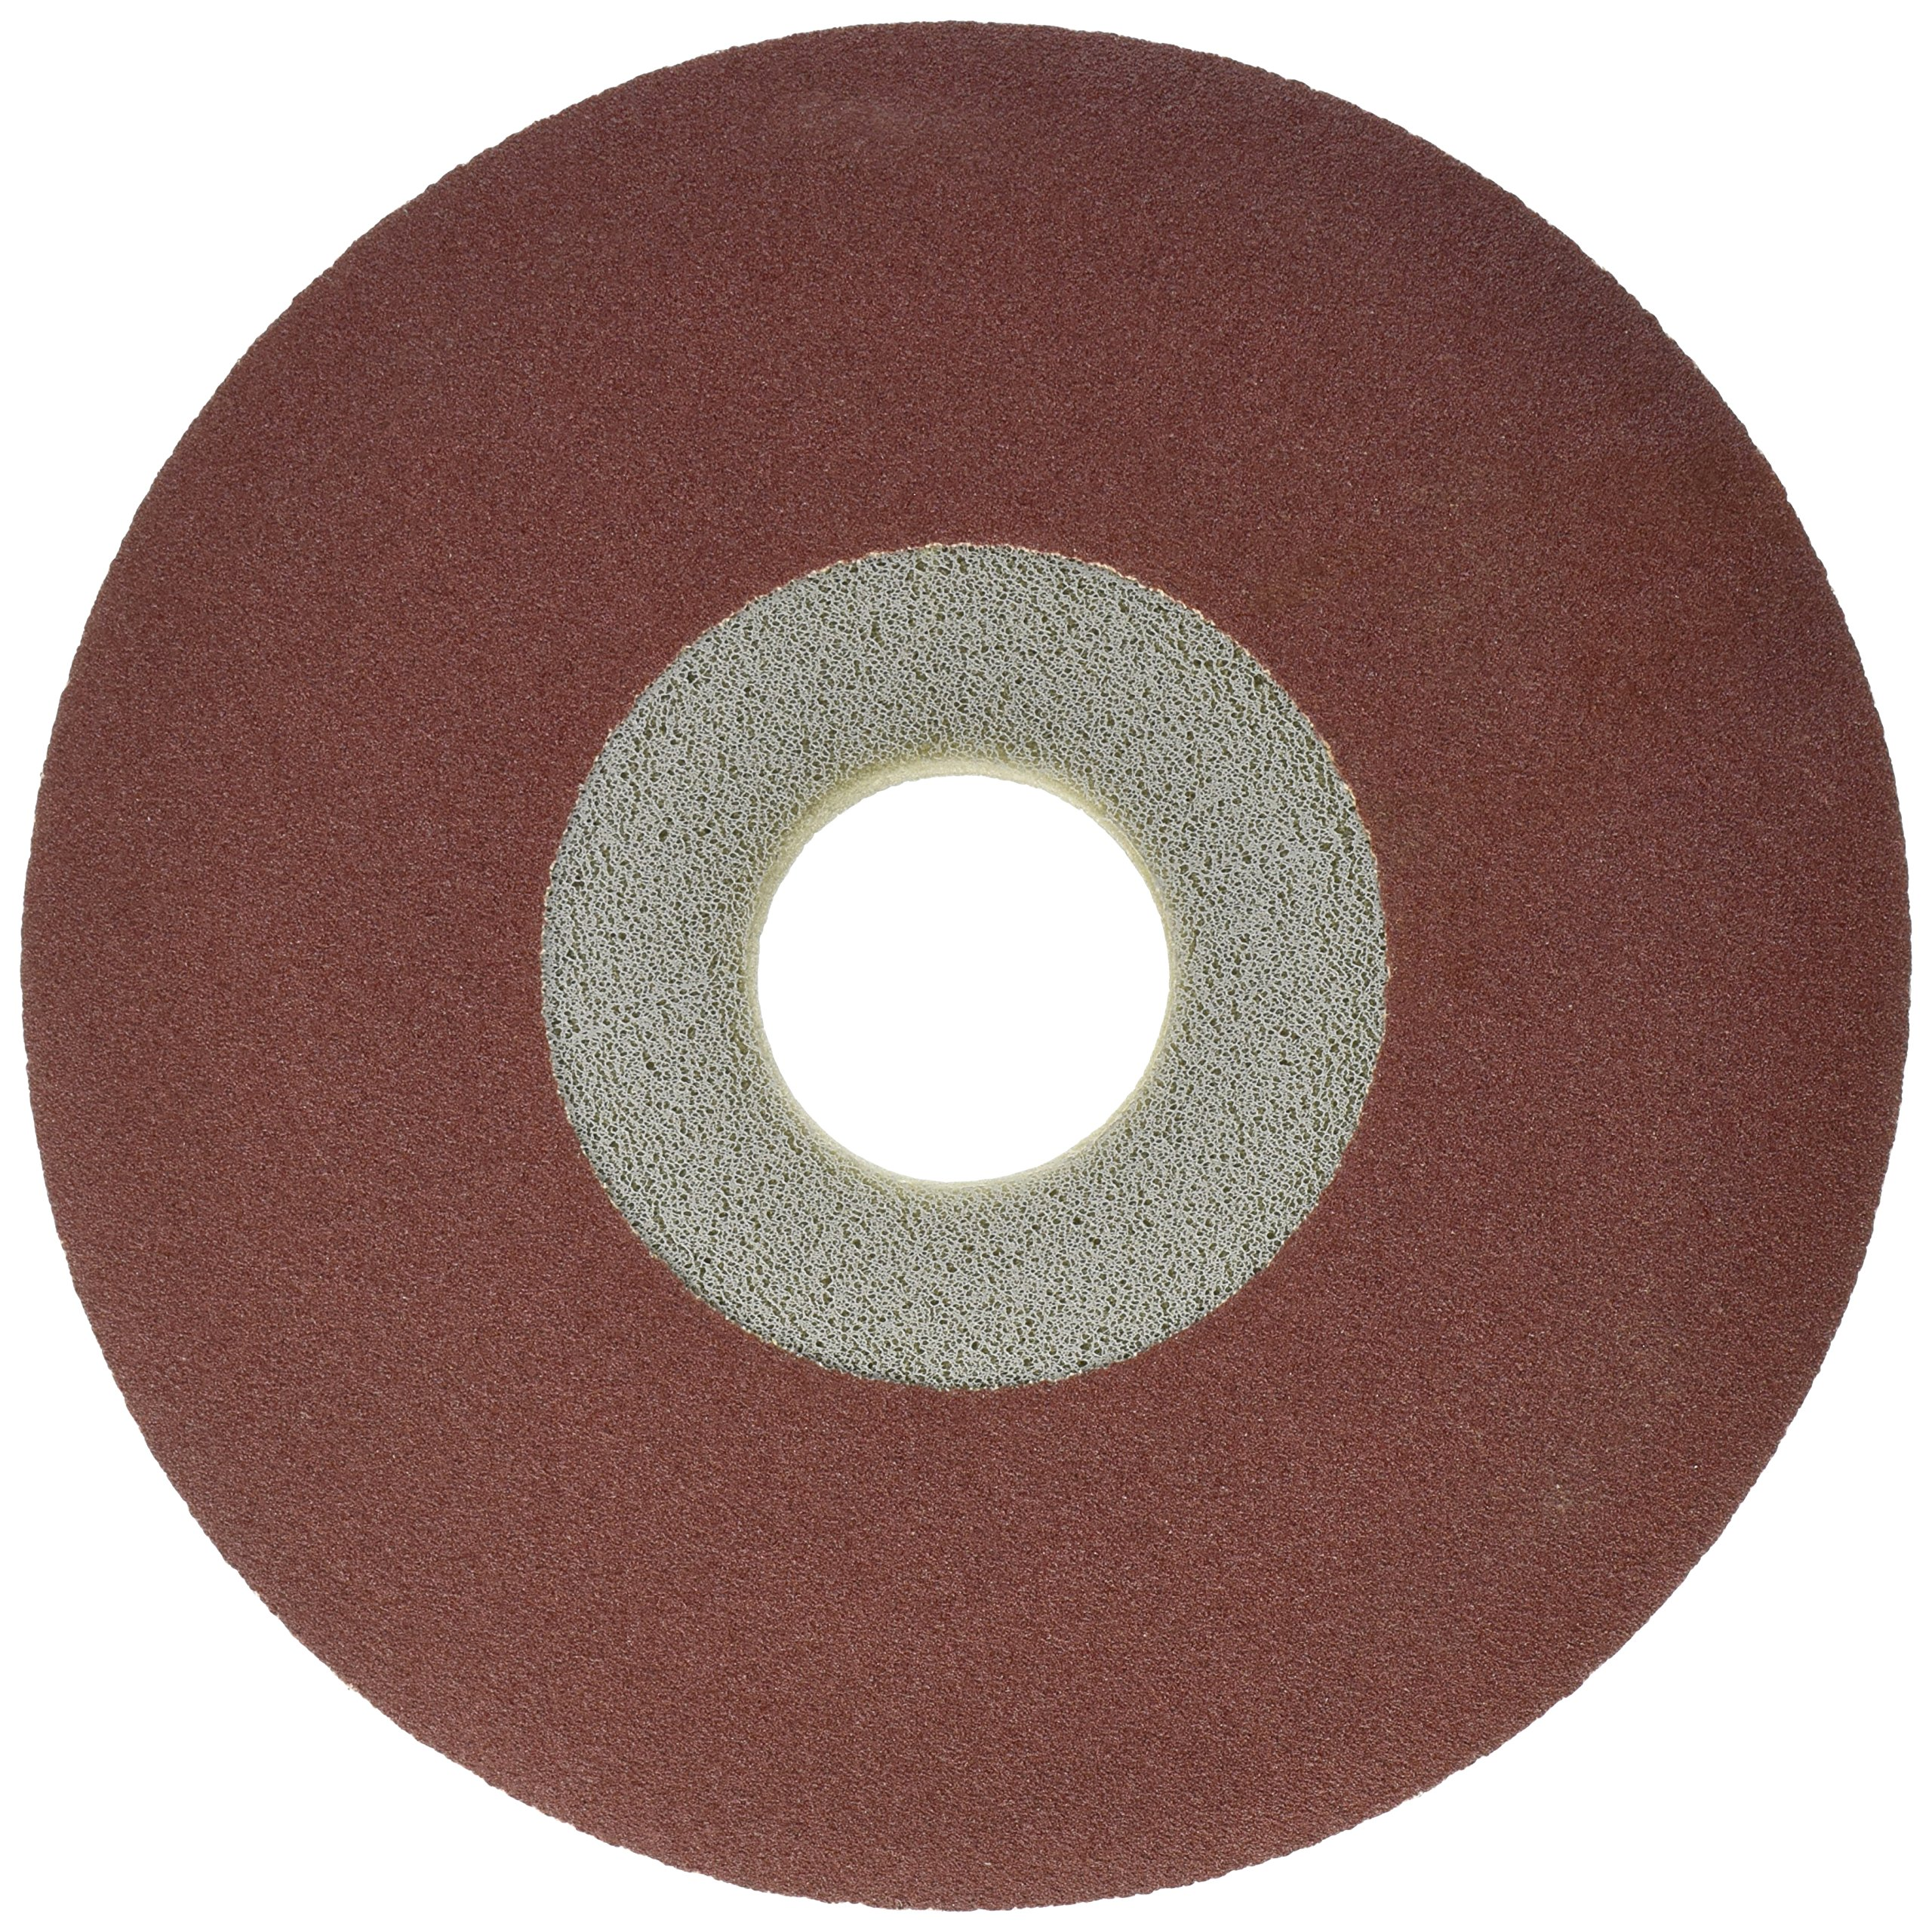 PORTER CABLE 77125 120 Grit Drywall Sanding Pads (5 Pack)